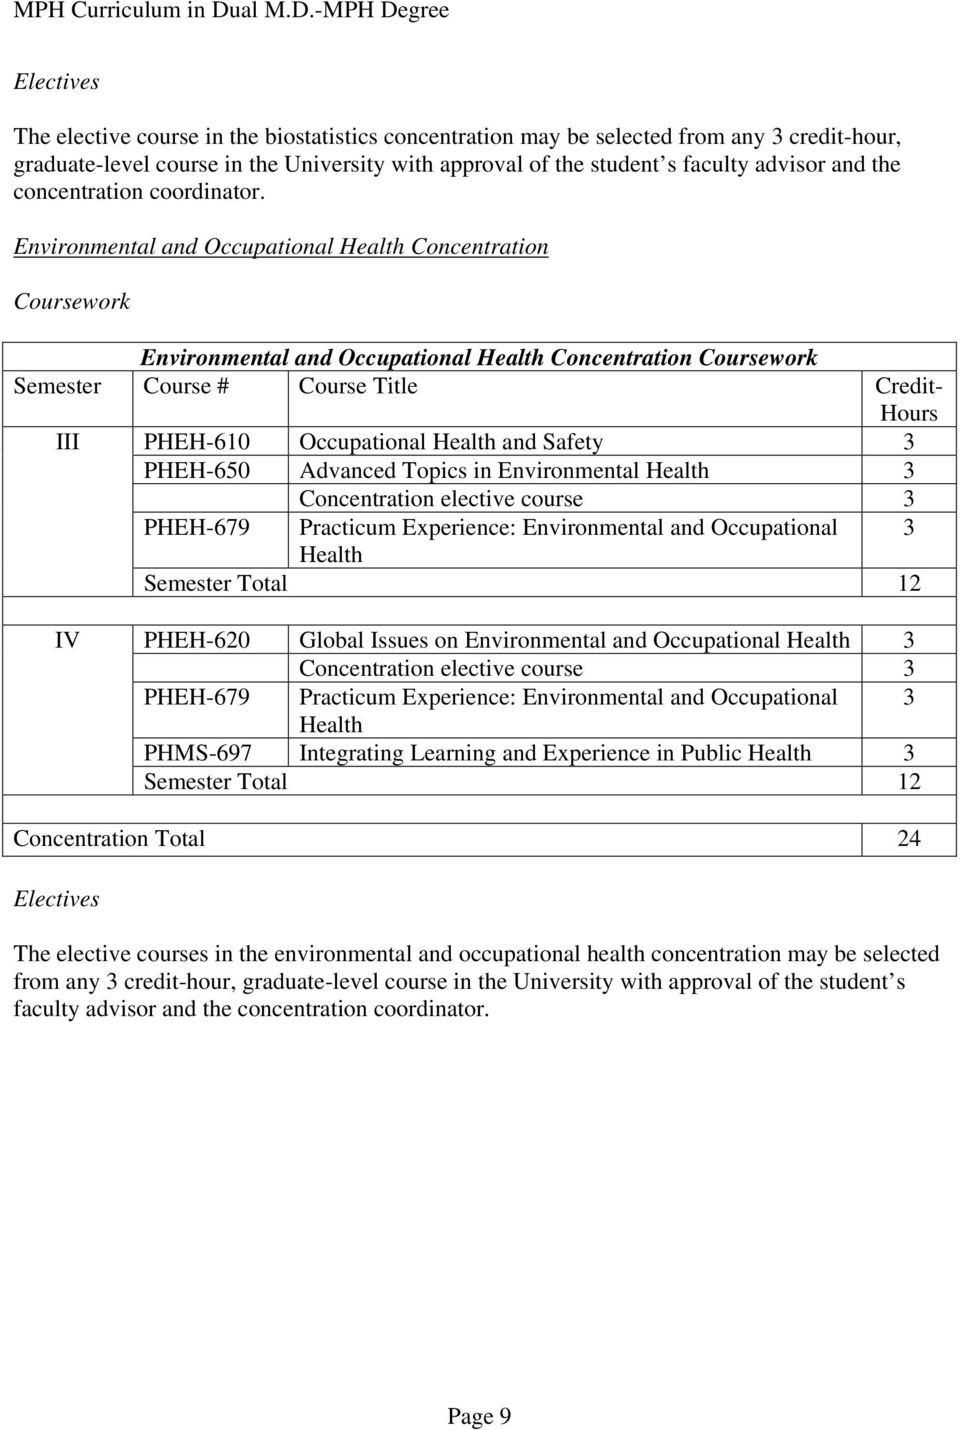 Environmental and Occupational Health Concentration Coursework Environmental and Occupational Health Concentration Coursework Semester Course # Course Title Credit- Hours III PHEH-610 Occupational